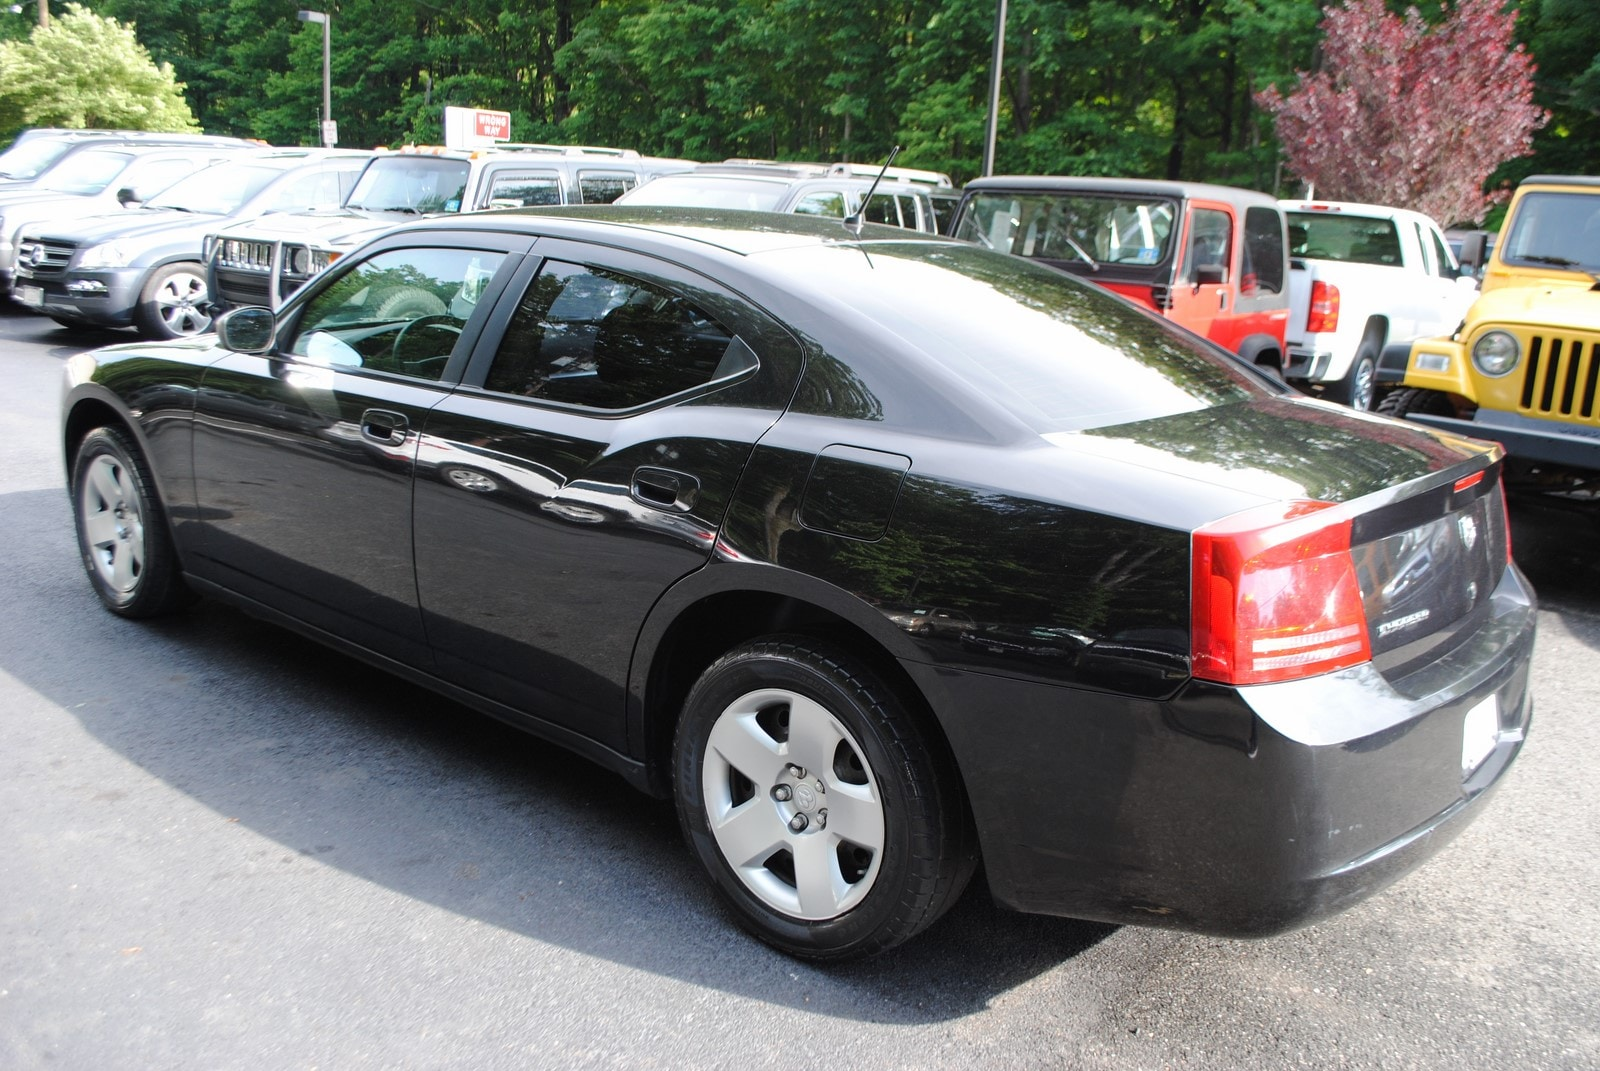 used 2008 dodge charger for sale west milford nj. Black Bedroom Furniture Sets. Home Design Ideas